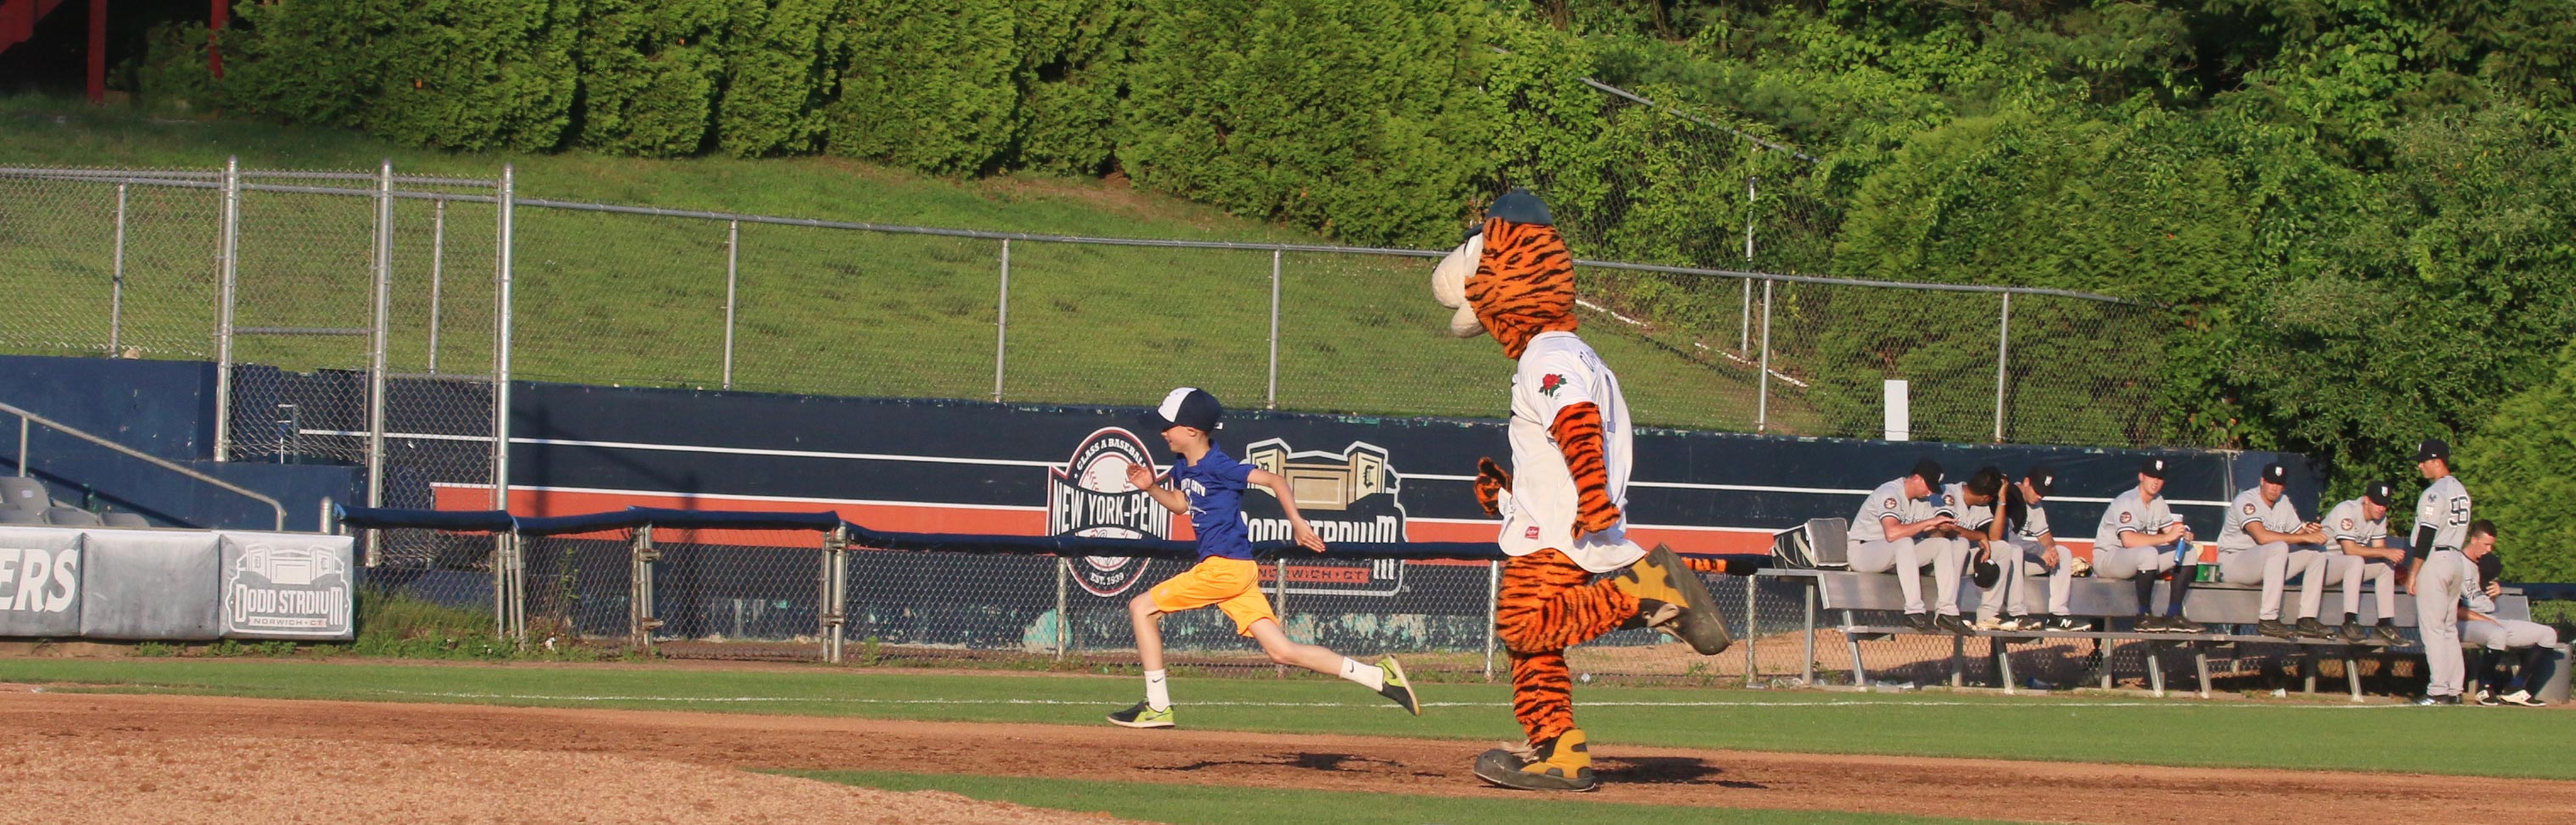 Ct The Tiger In Trouble On The Bases